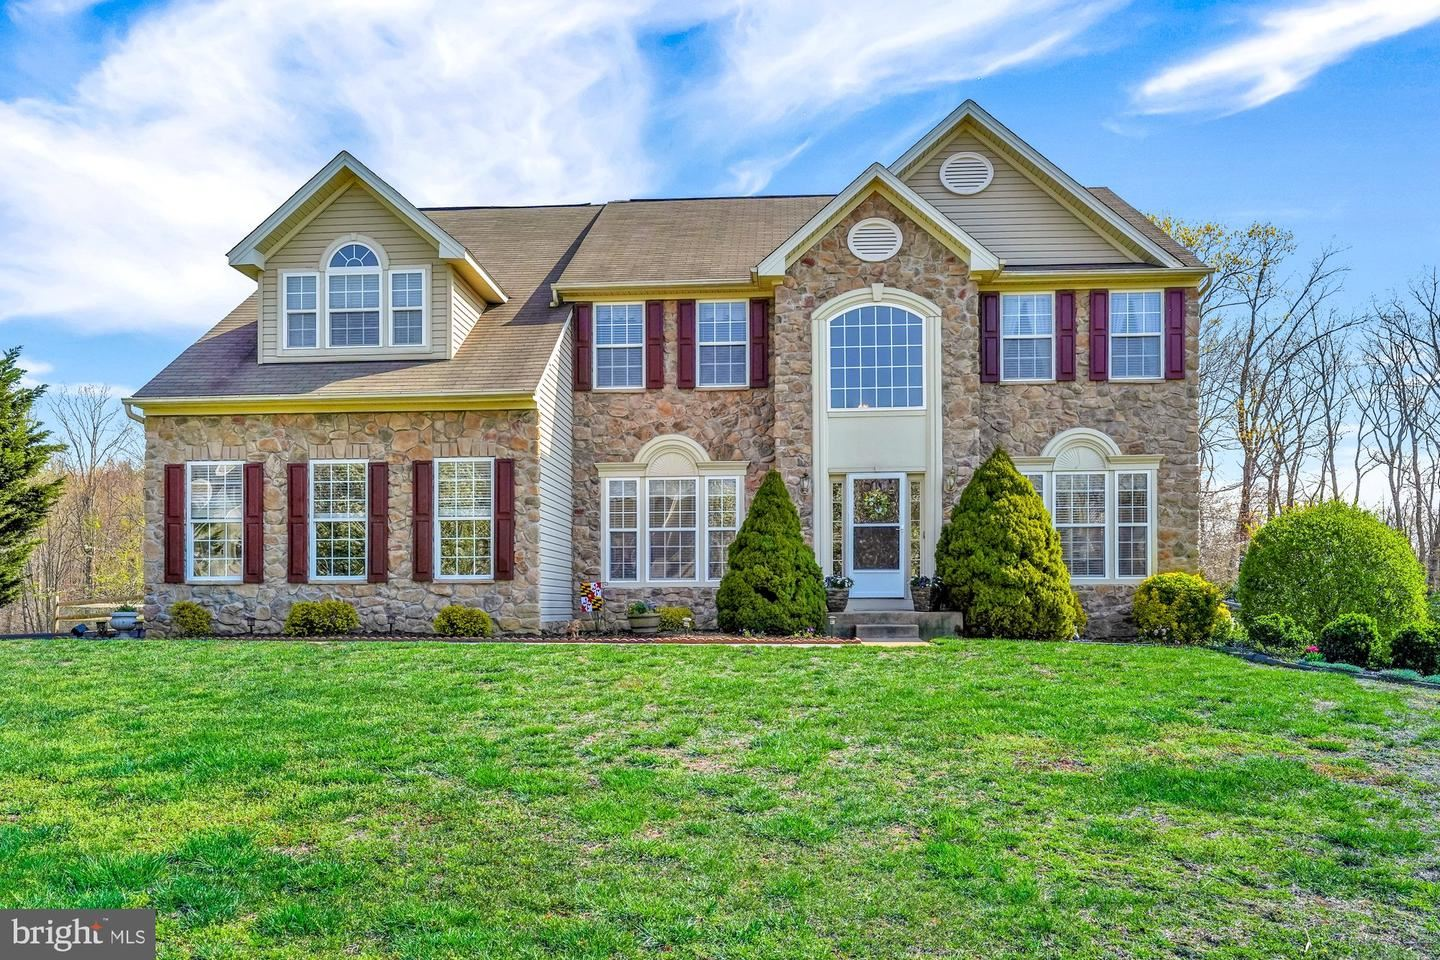 125 FOREST KNOLL DR, Elkton, MD 21921 - MLS#: MDCC169664